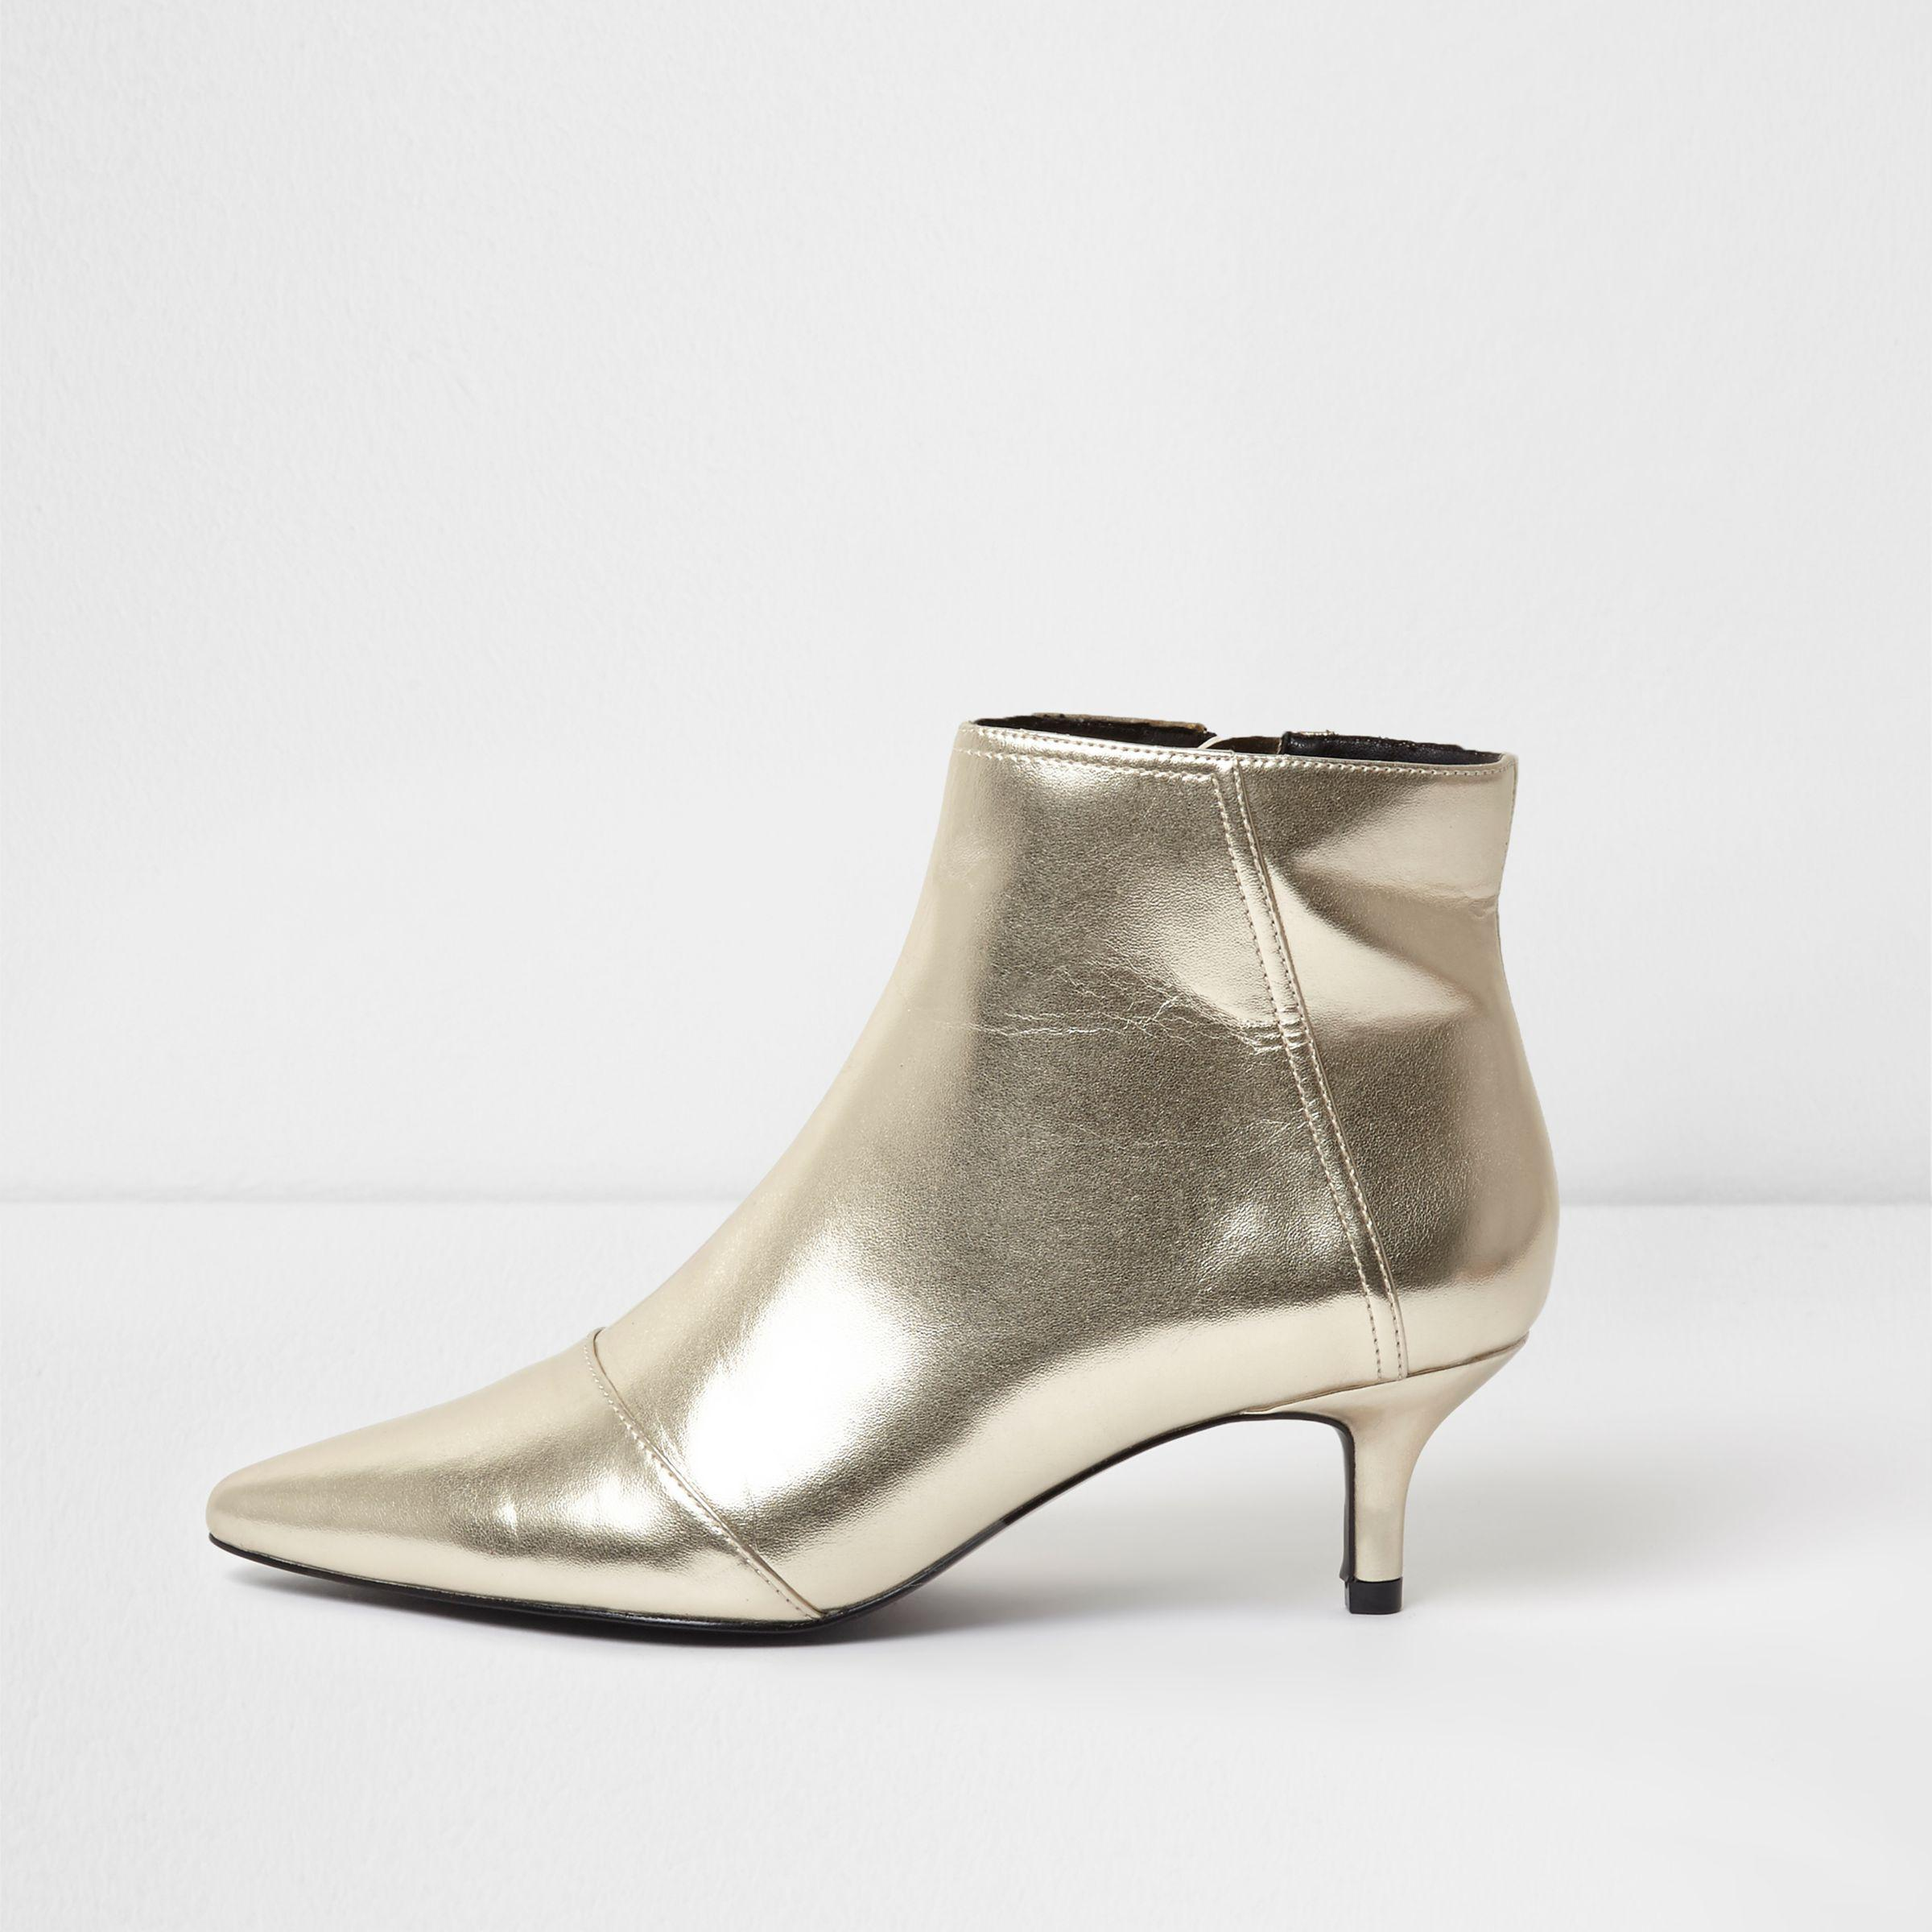 19ae6d505d7 Women's Yellow Gold Metallic Pointed Kitten Heel Ankle Boots